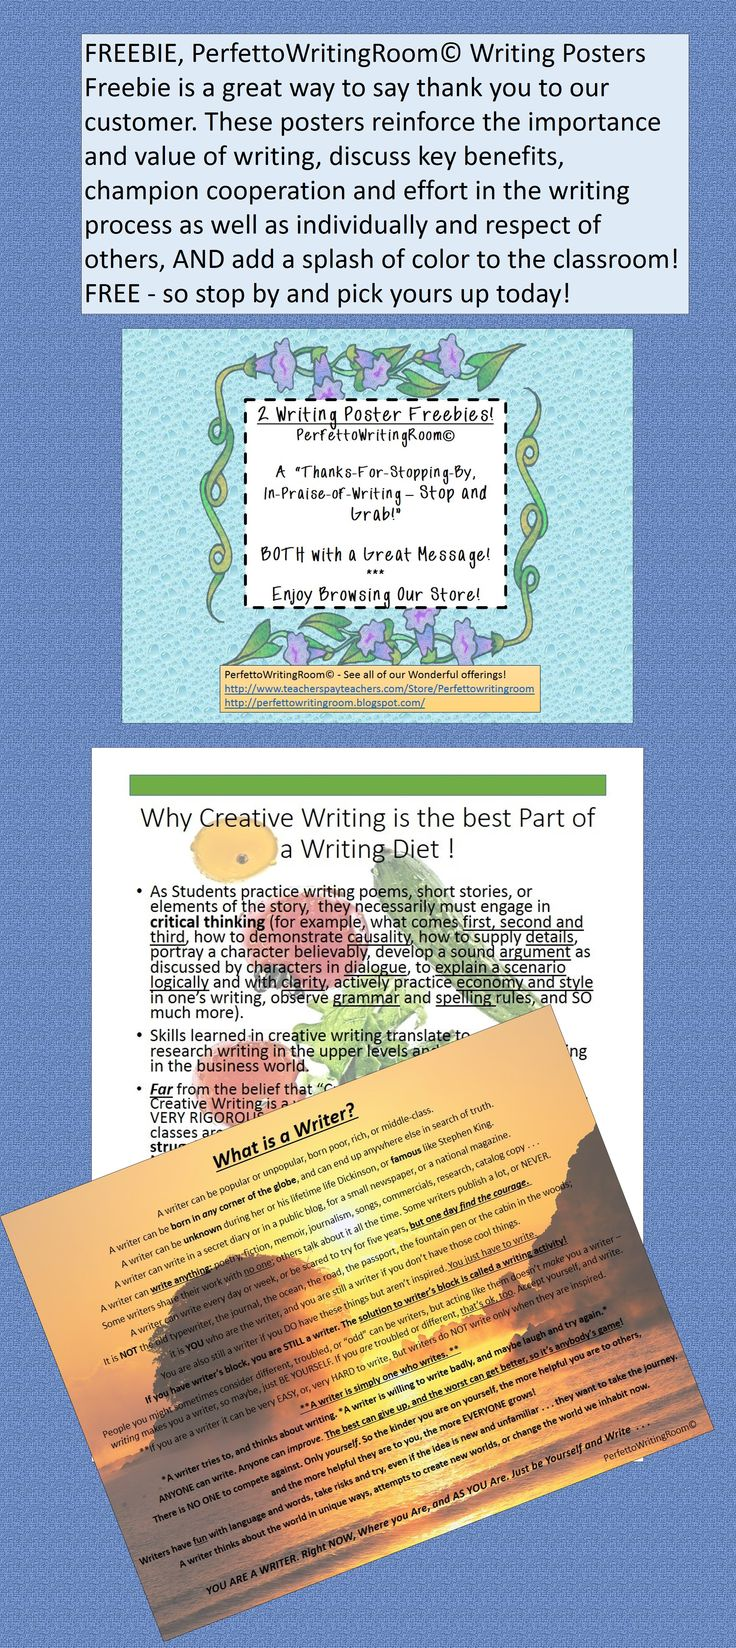 essay about a student trying to The simplest way to write essays money saving advice for college students • try different savings and budgeting methods to see what works for you.